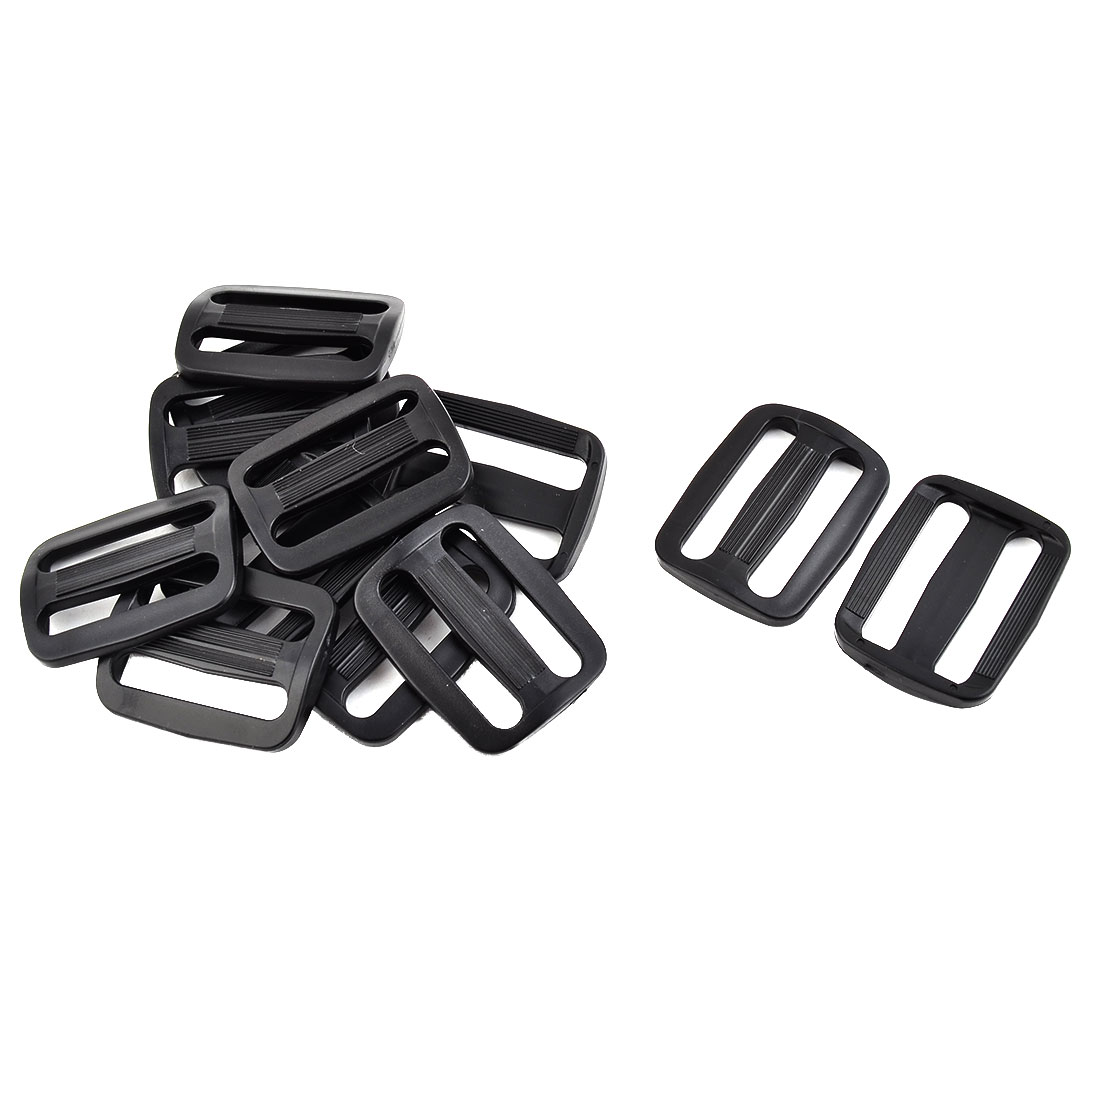 Plastic Adjustable Backpack Strap Belt Tri Glide Fastener Buckle Black 12 Pcs